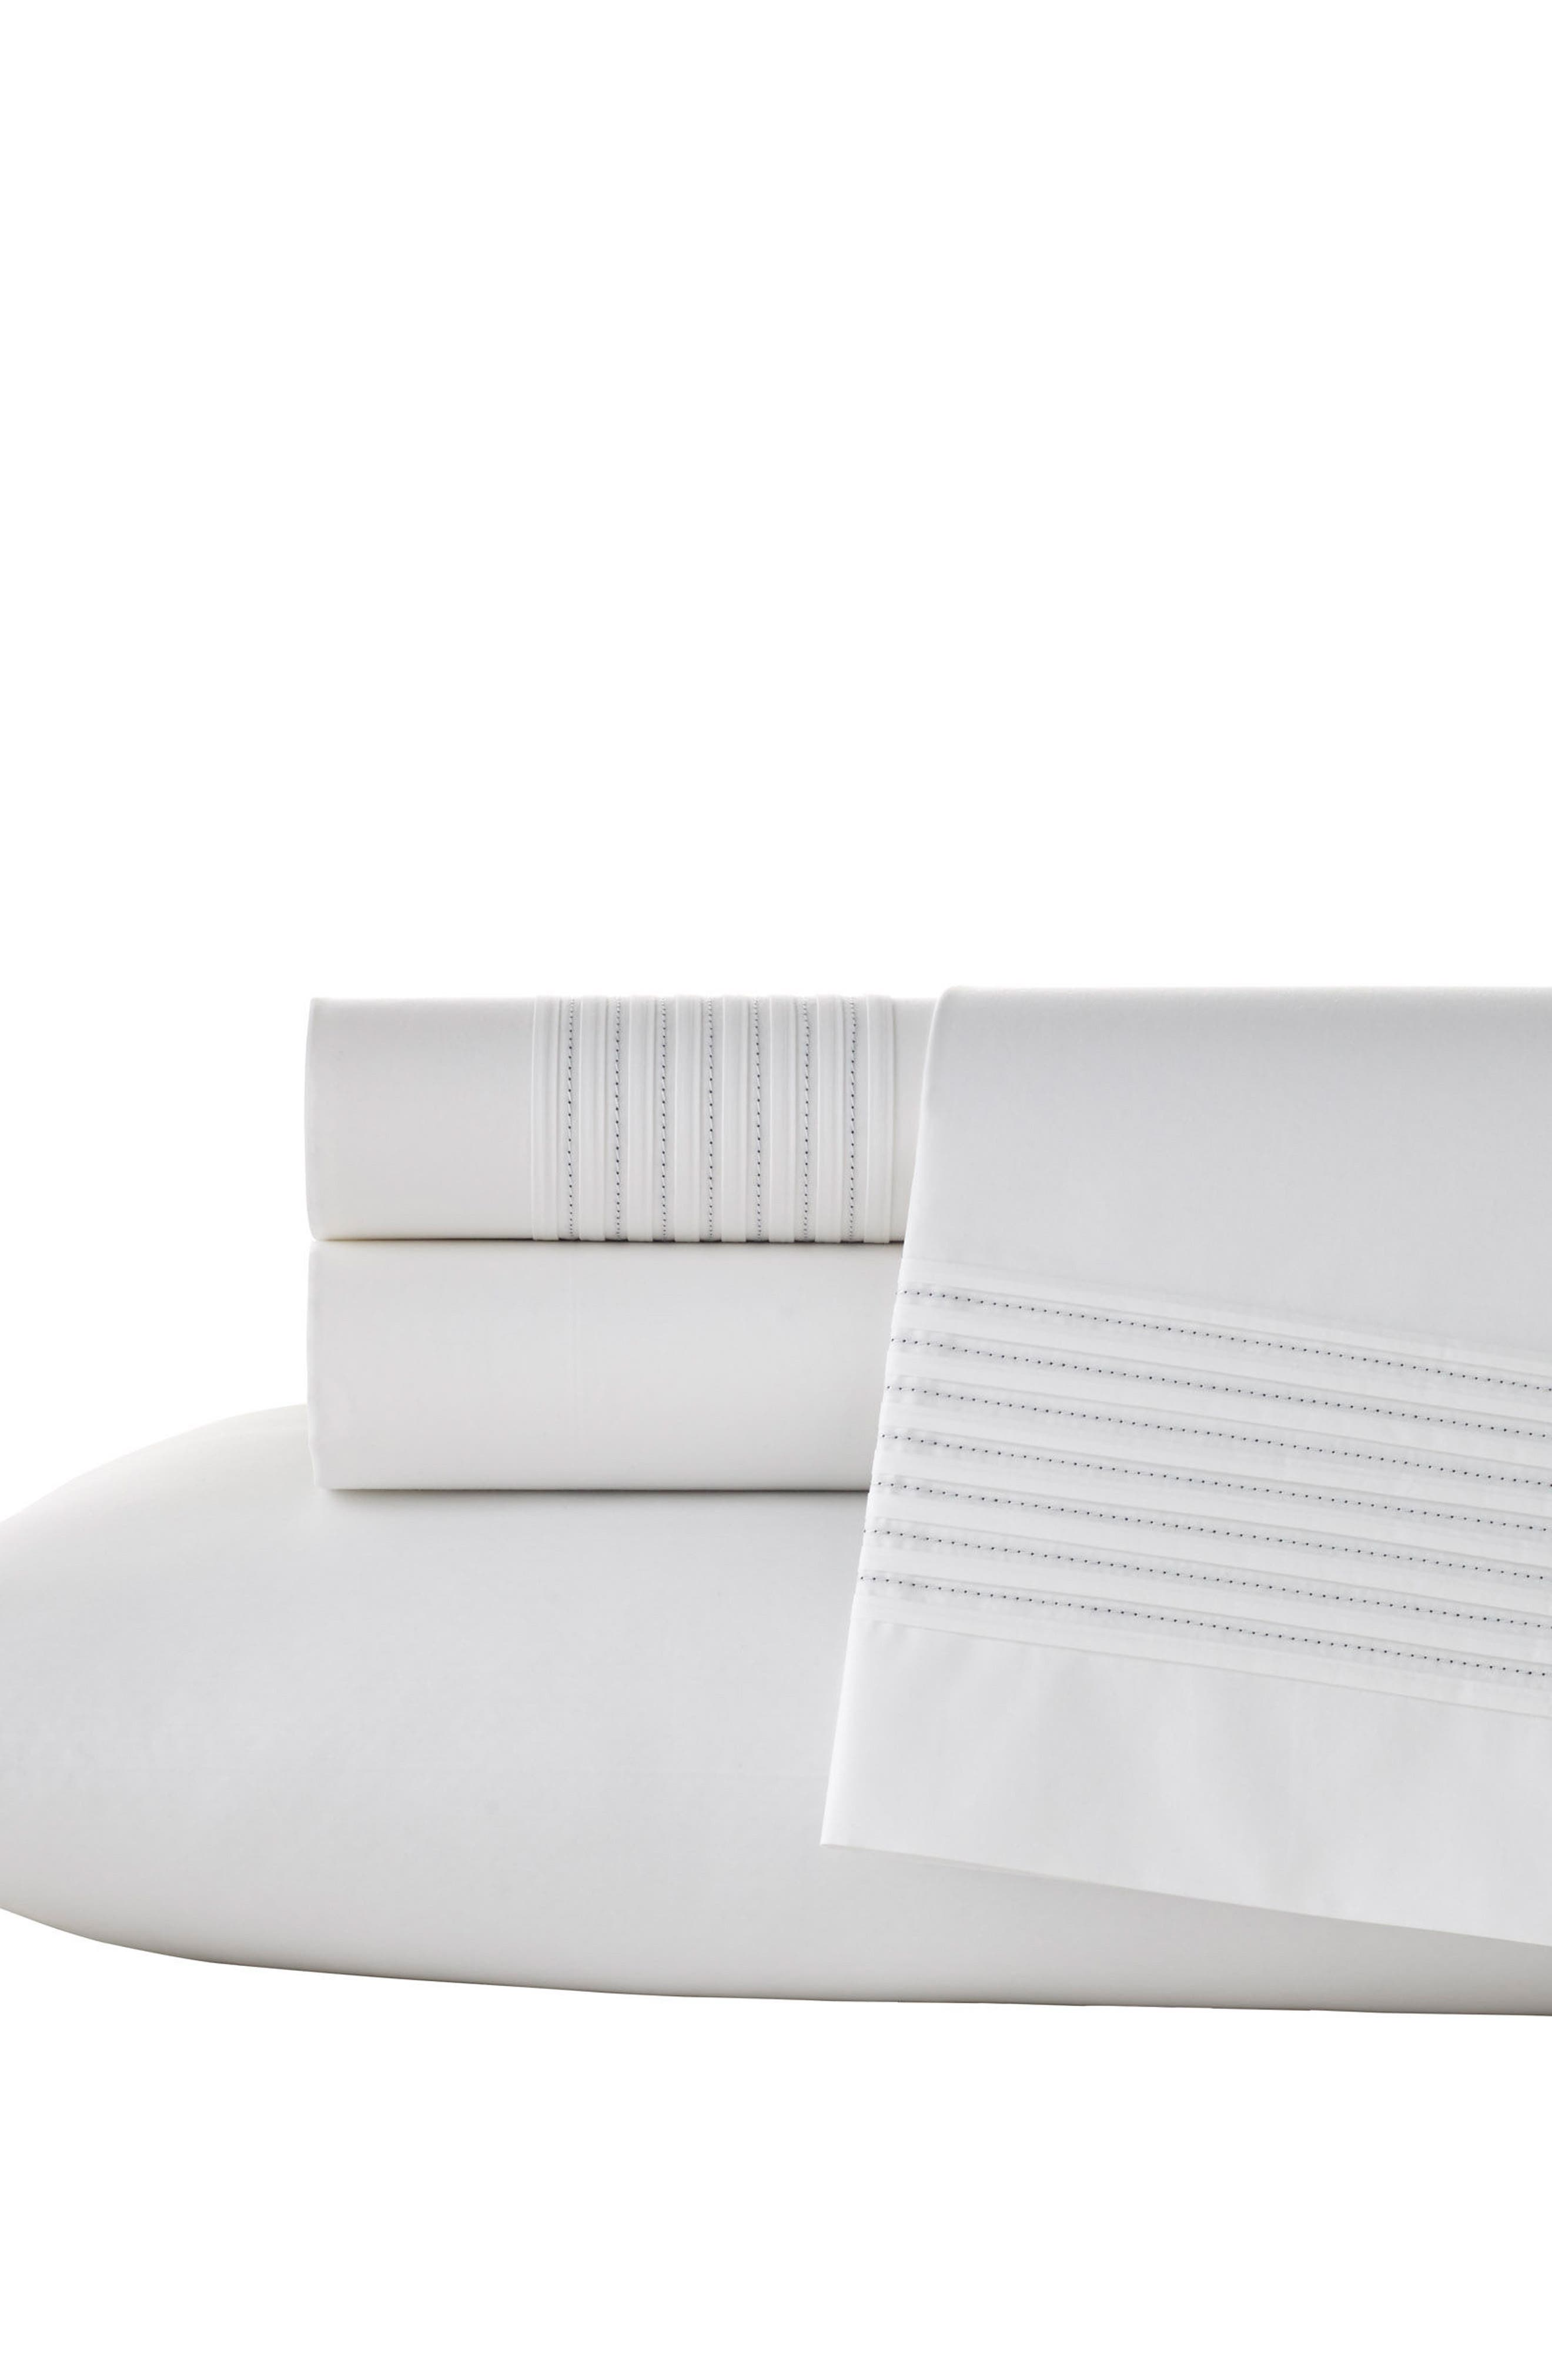 Mirrored Square 400 Thread Count Flat Sheet,                         Main,                         color, White